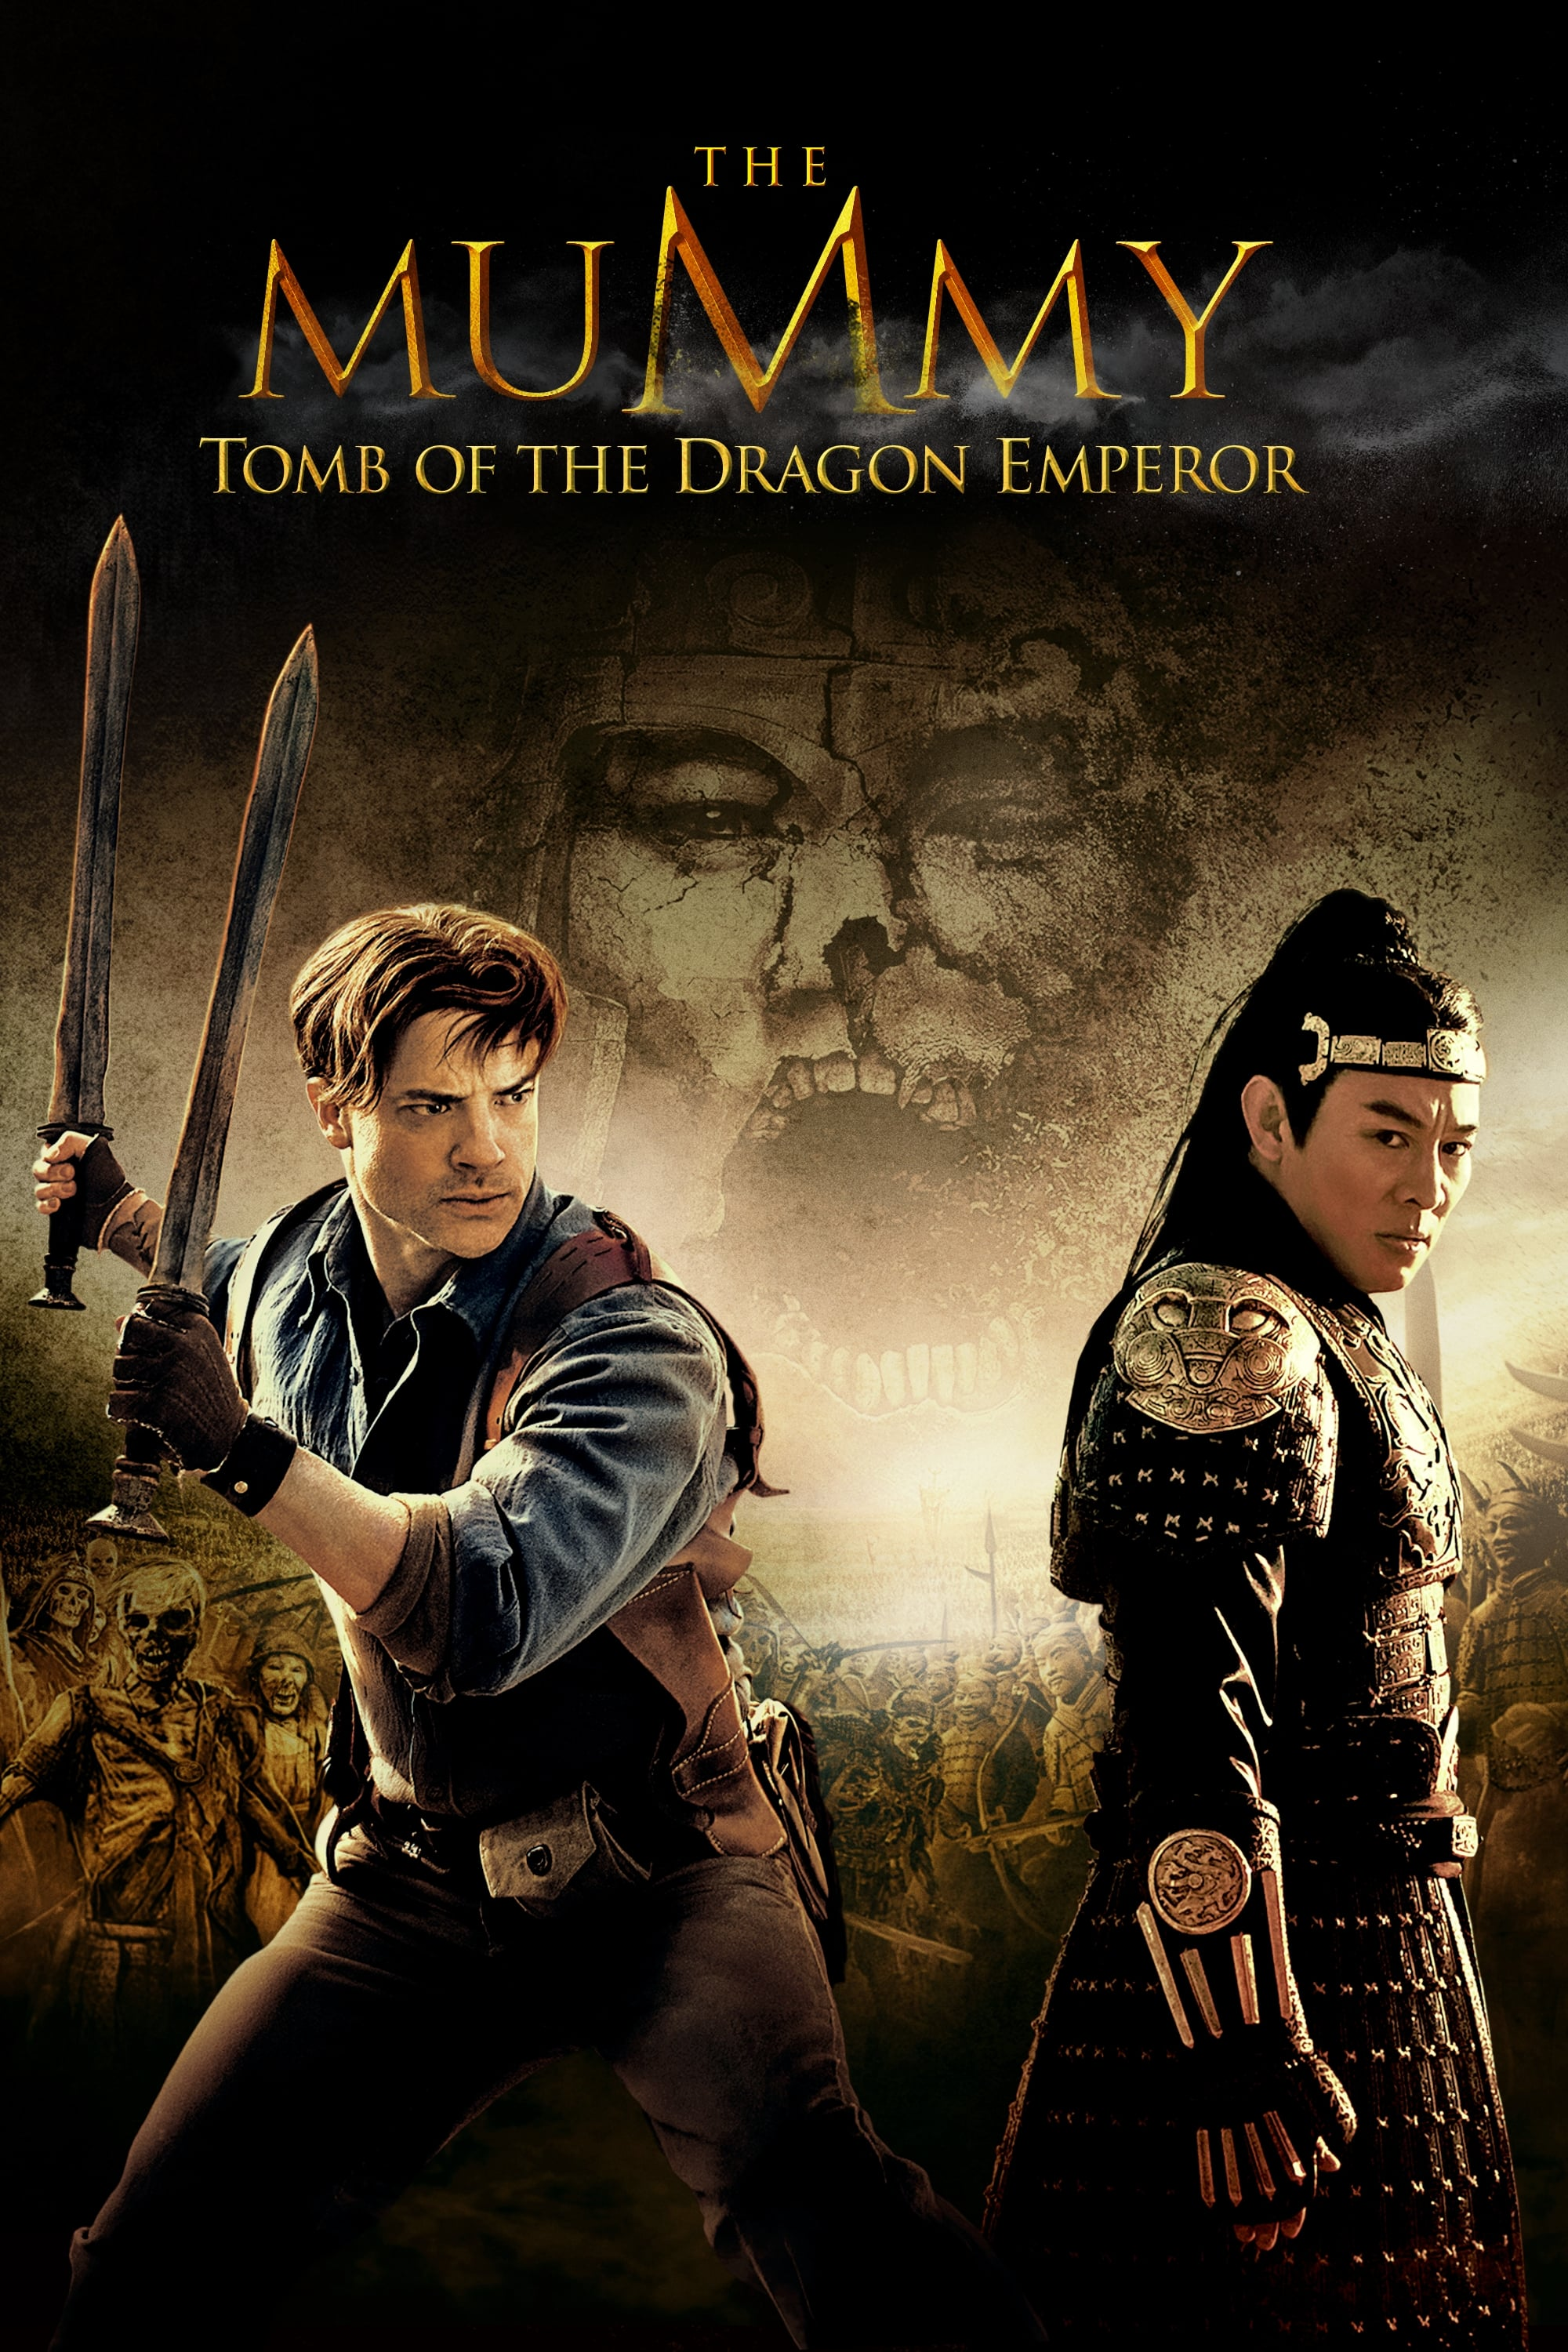 The Mummy Tomb Of The Dragon Emperor Actress The Mummy: Tomb of the...